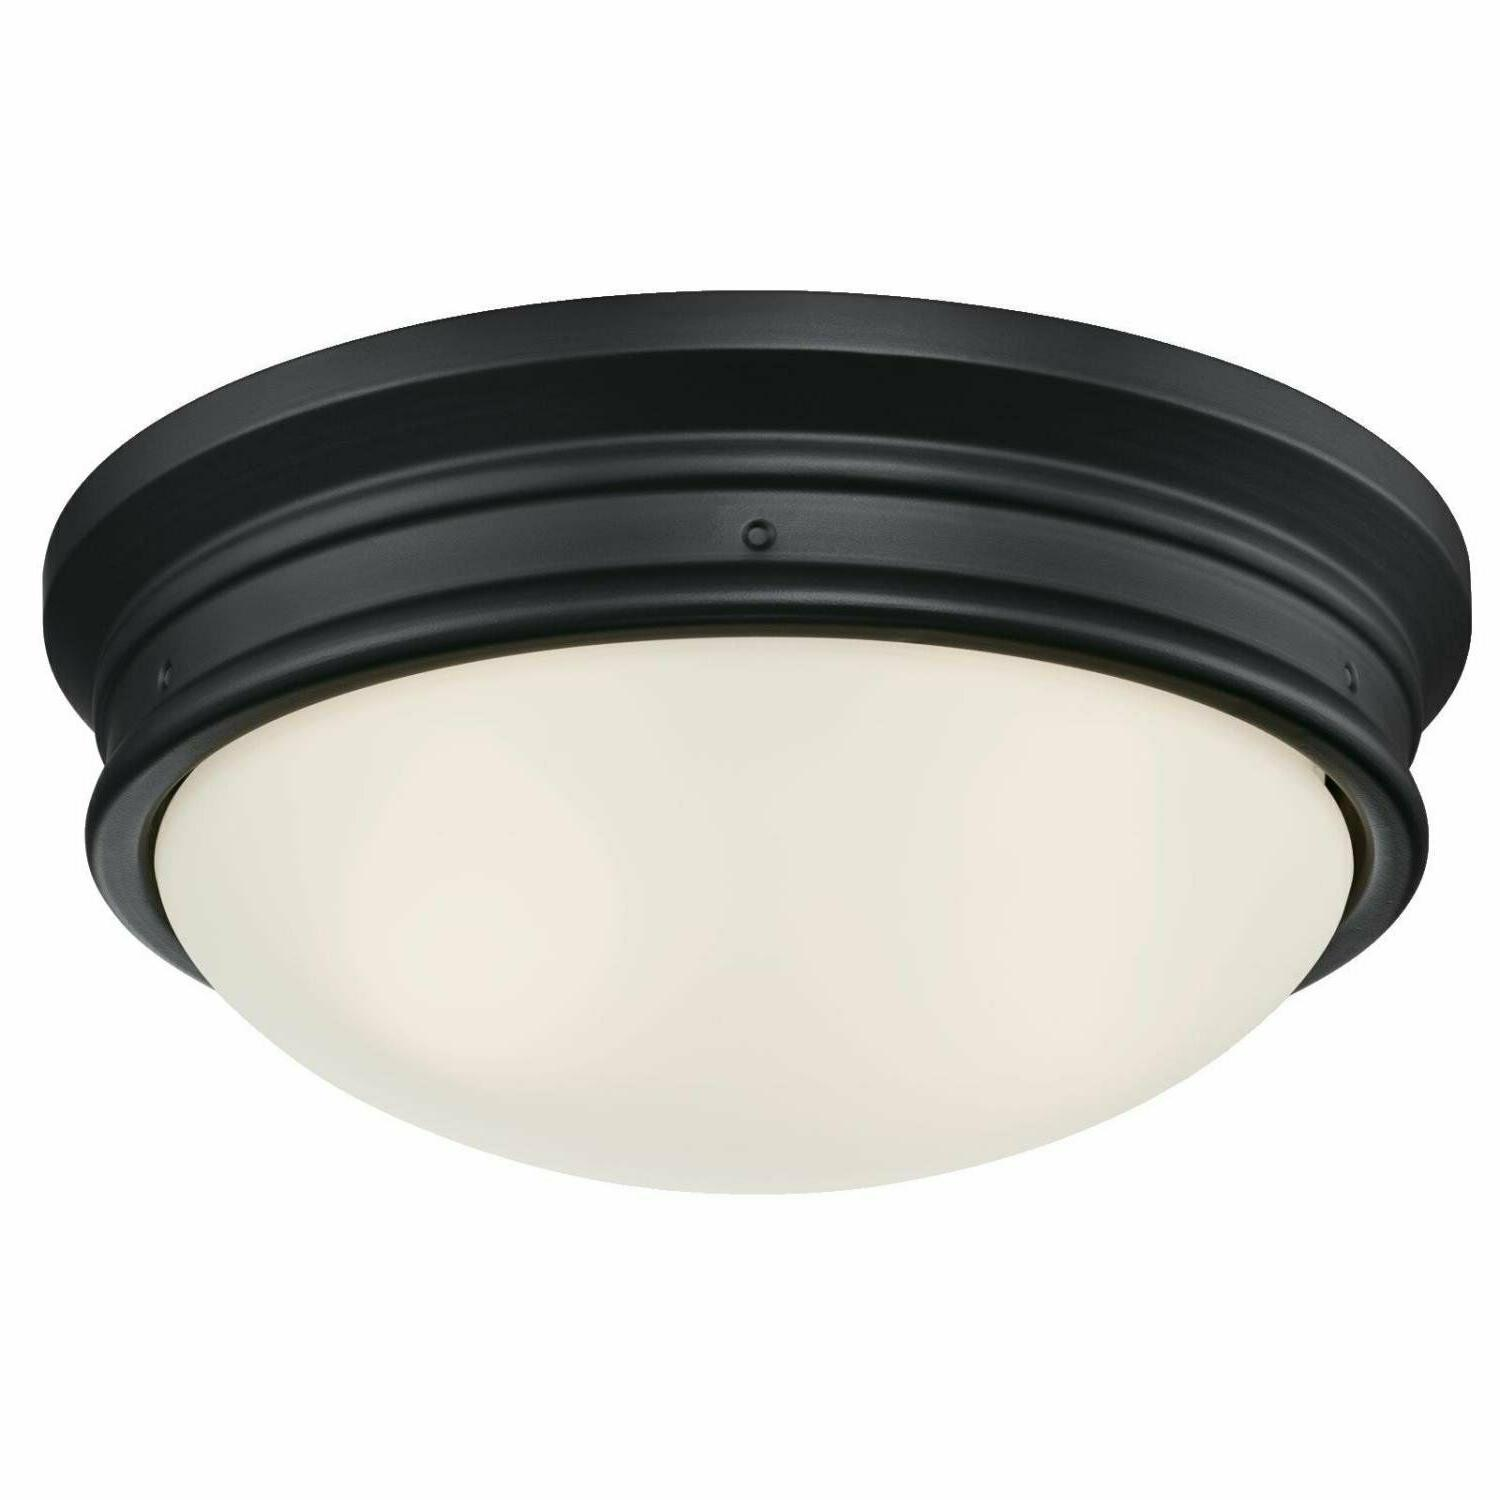 6324100 meadowbrook two light indoor flush mount